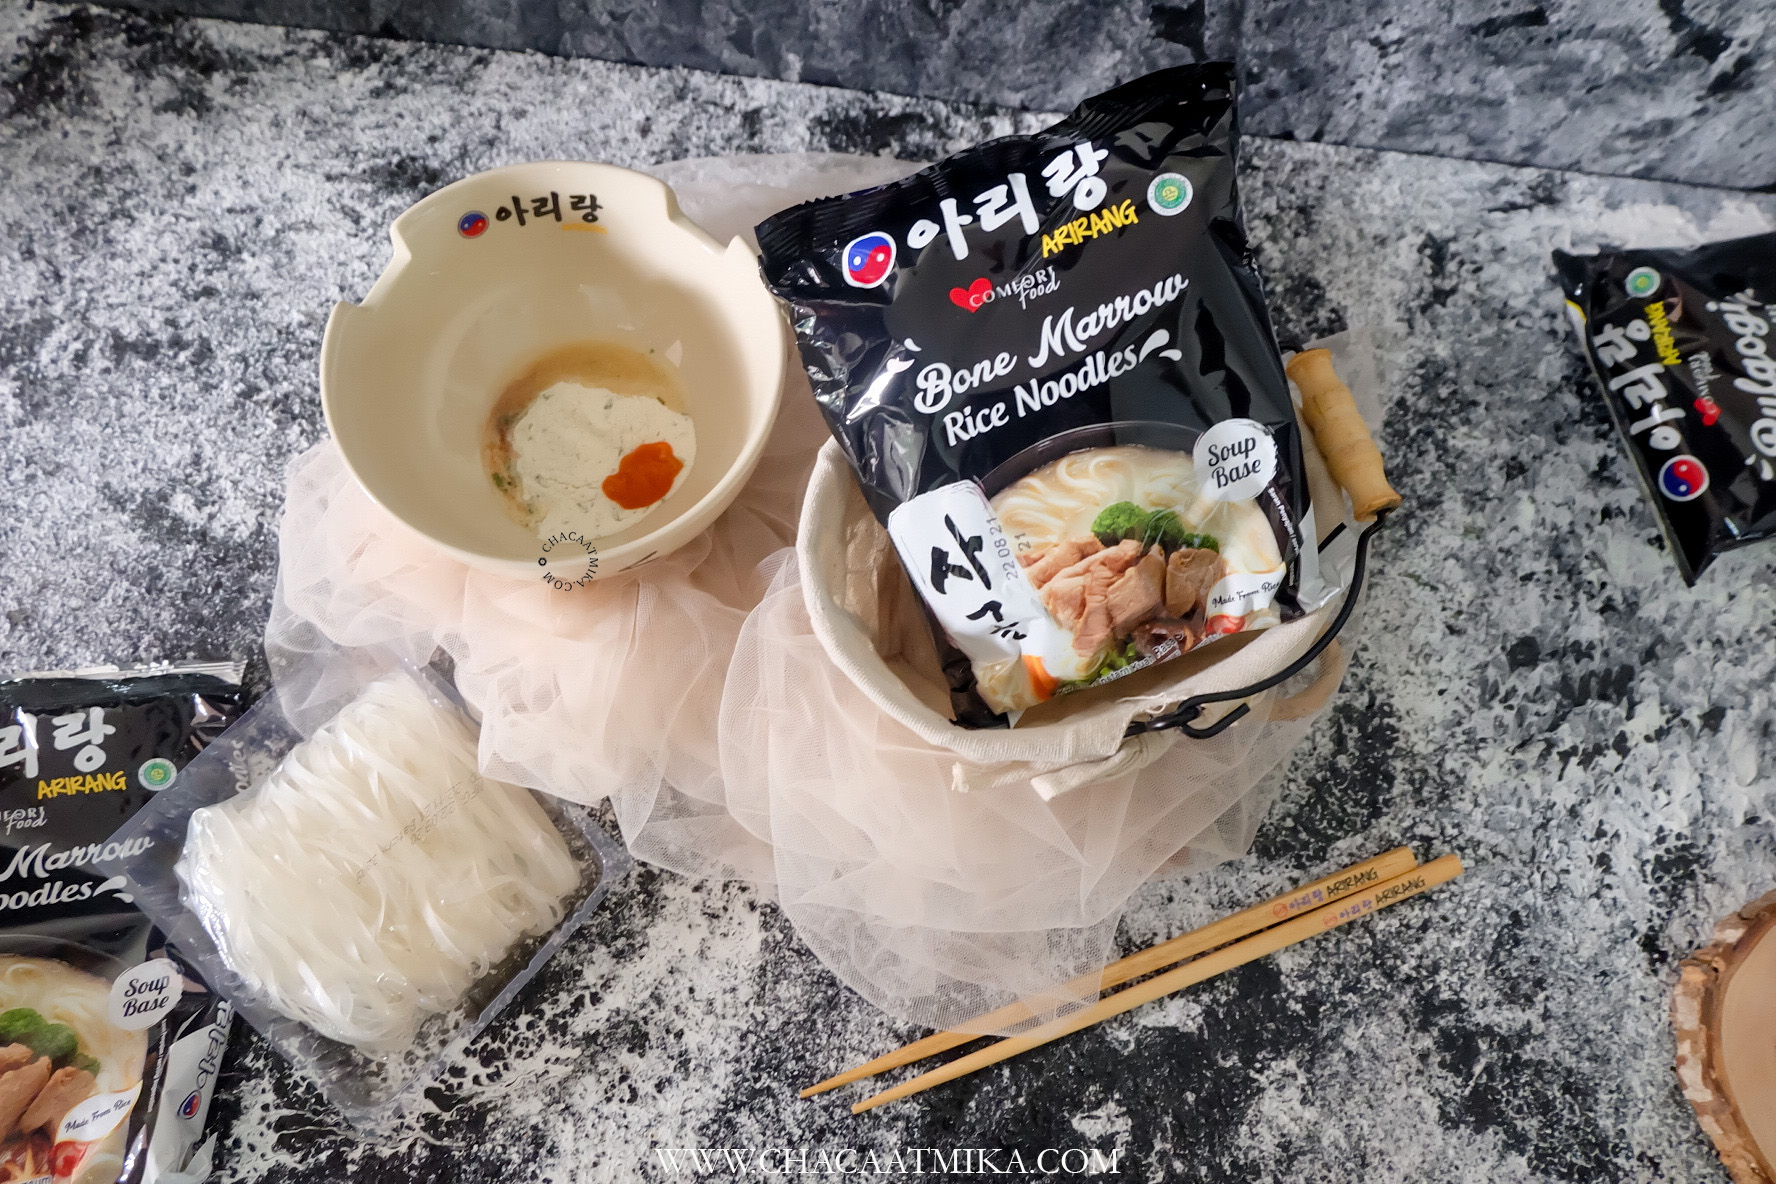 Review Mie Arirang Bone Marrow Rice Noodles